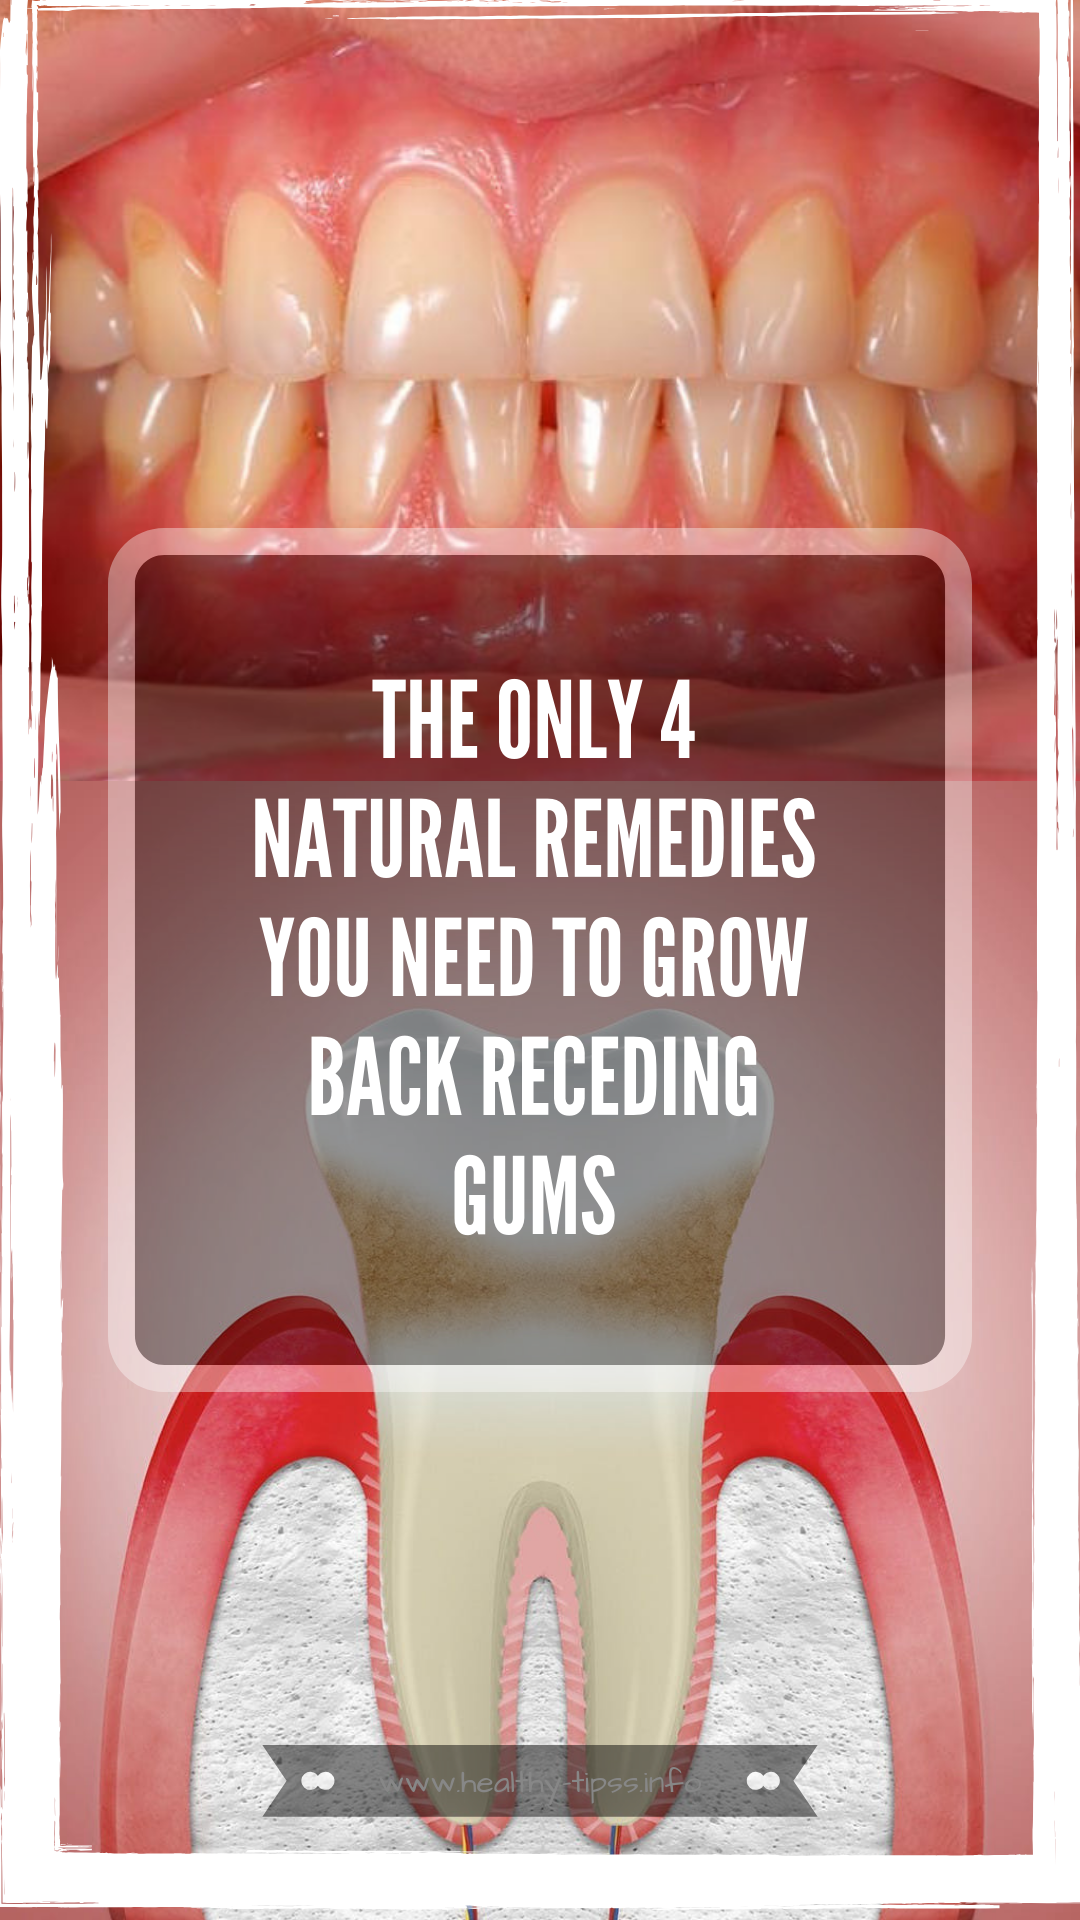 THE ONLY 4 NATURAL REMEDIES YOU NEED TO GROW BACK RECEDING